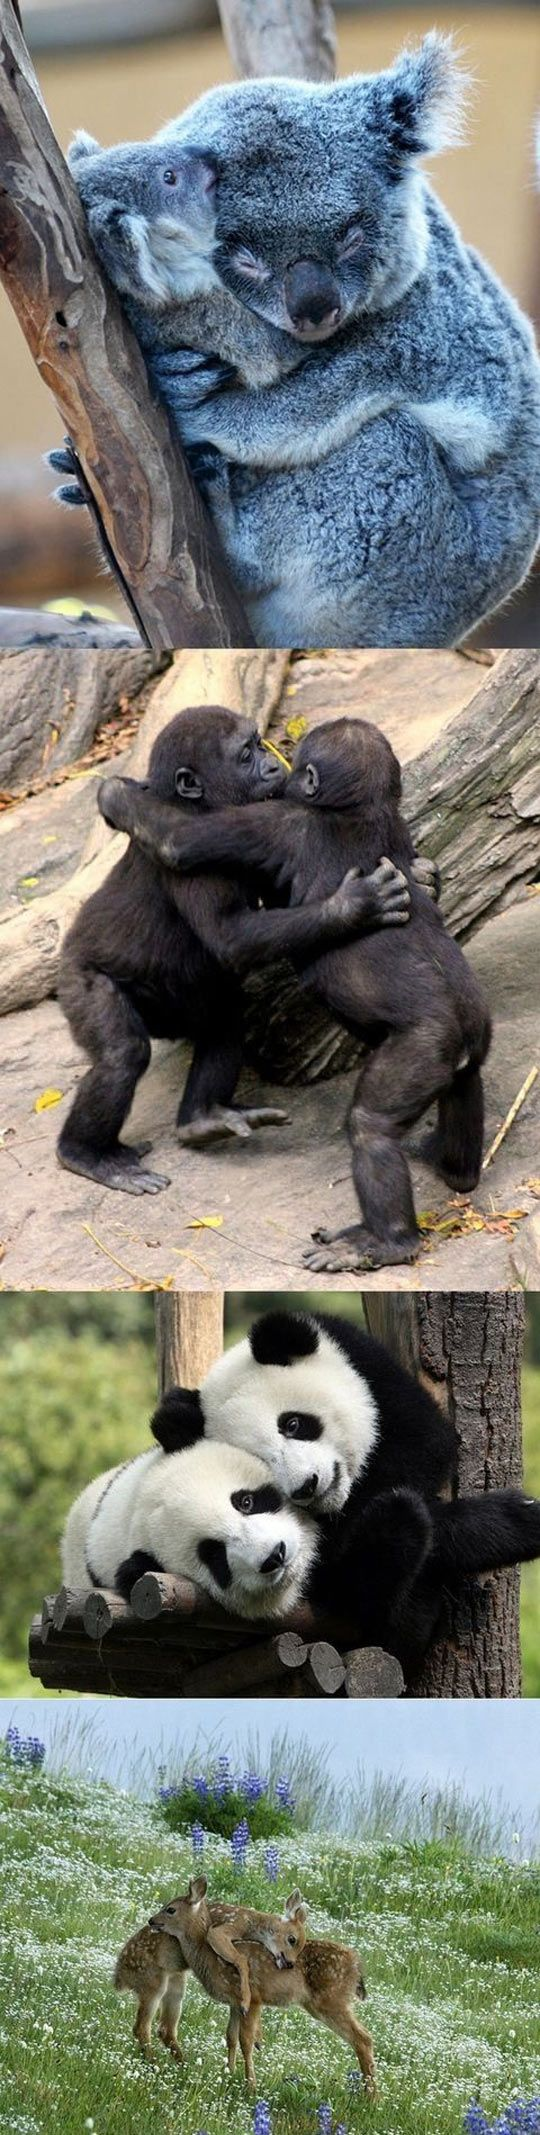 Aww so cute OMG this is why we need to be more like animals...Cute caring cooperative loyal non stressed people that genuinely love each other and work together. Thank you animals!!!!!!!